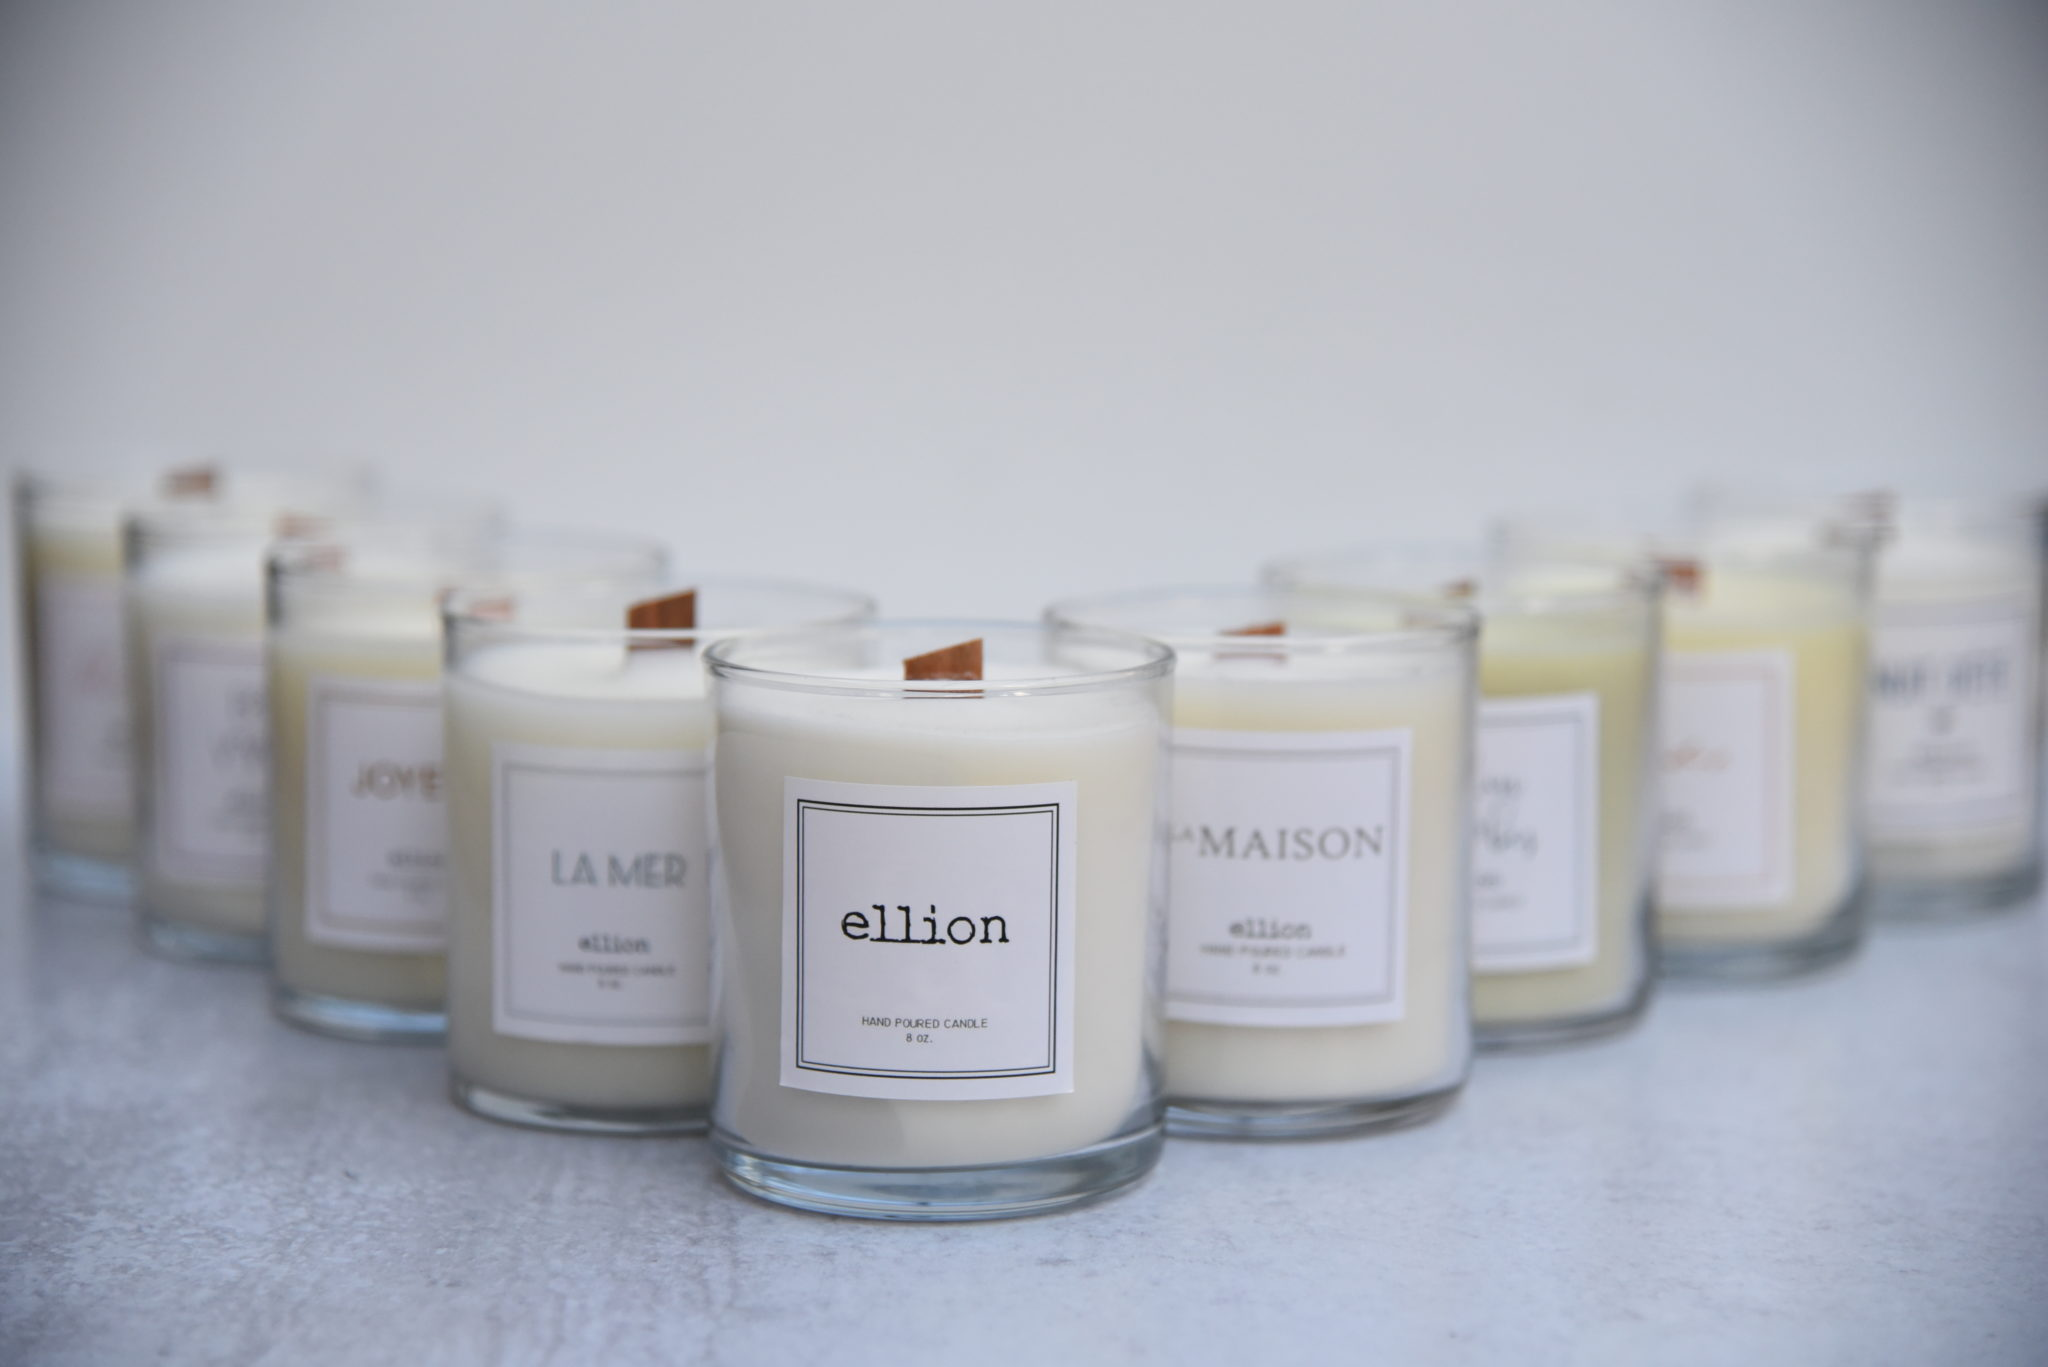 Ellion hand-poured candles